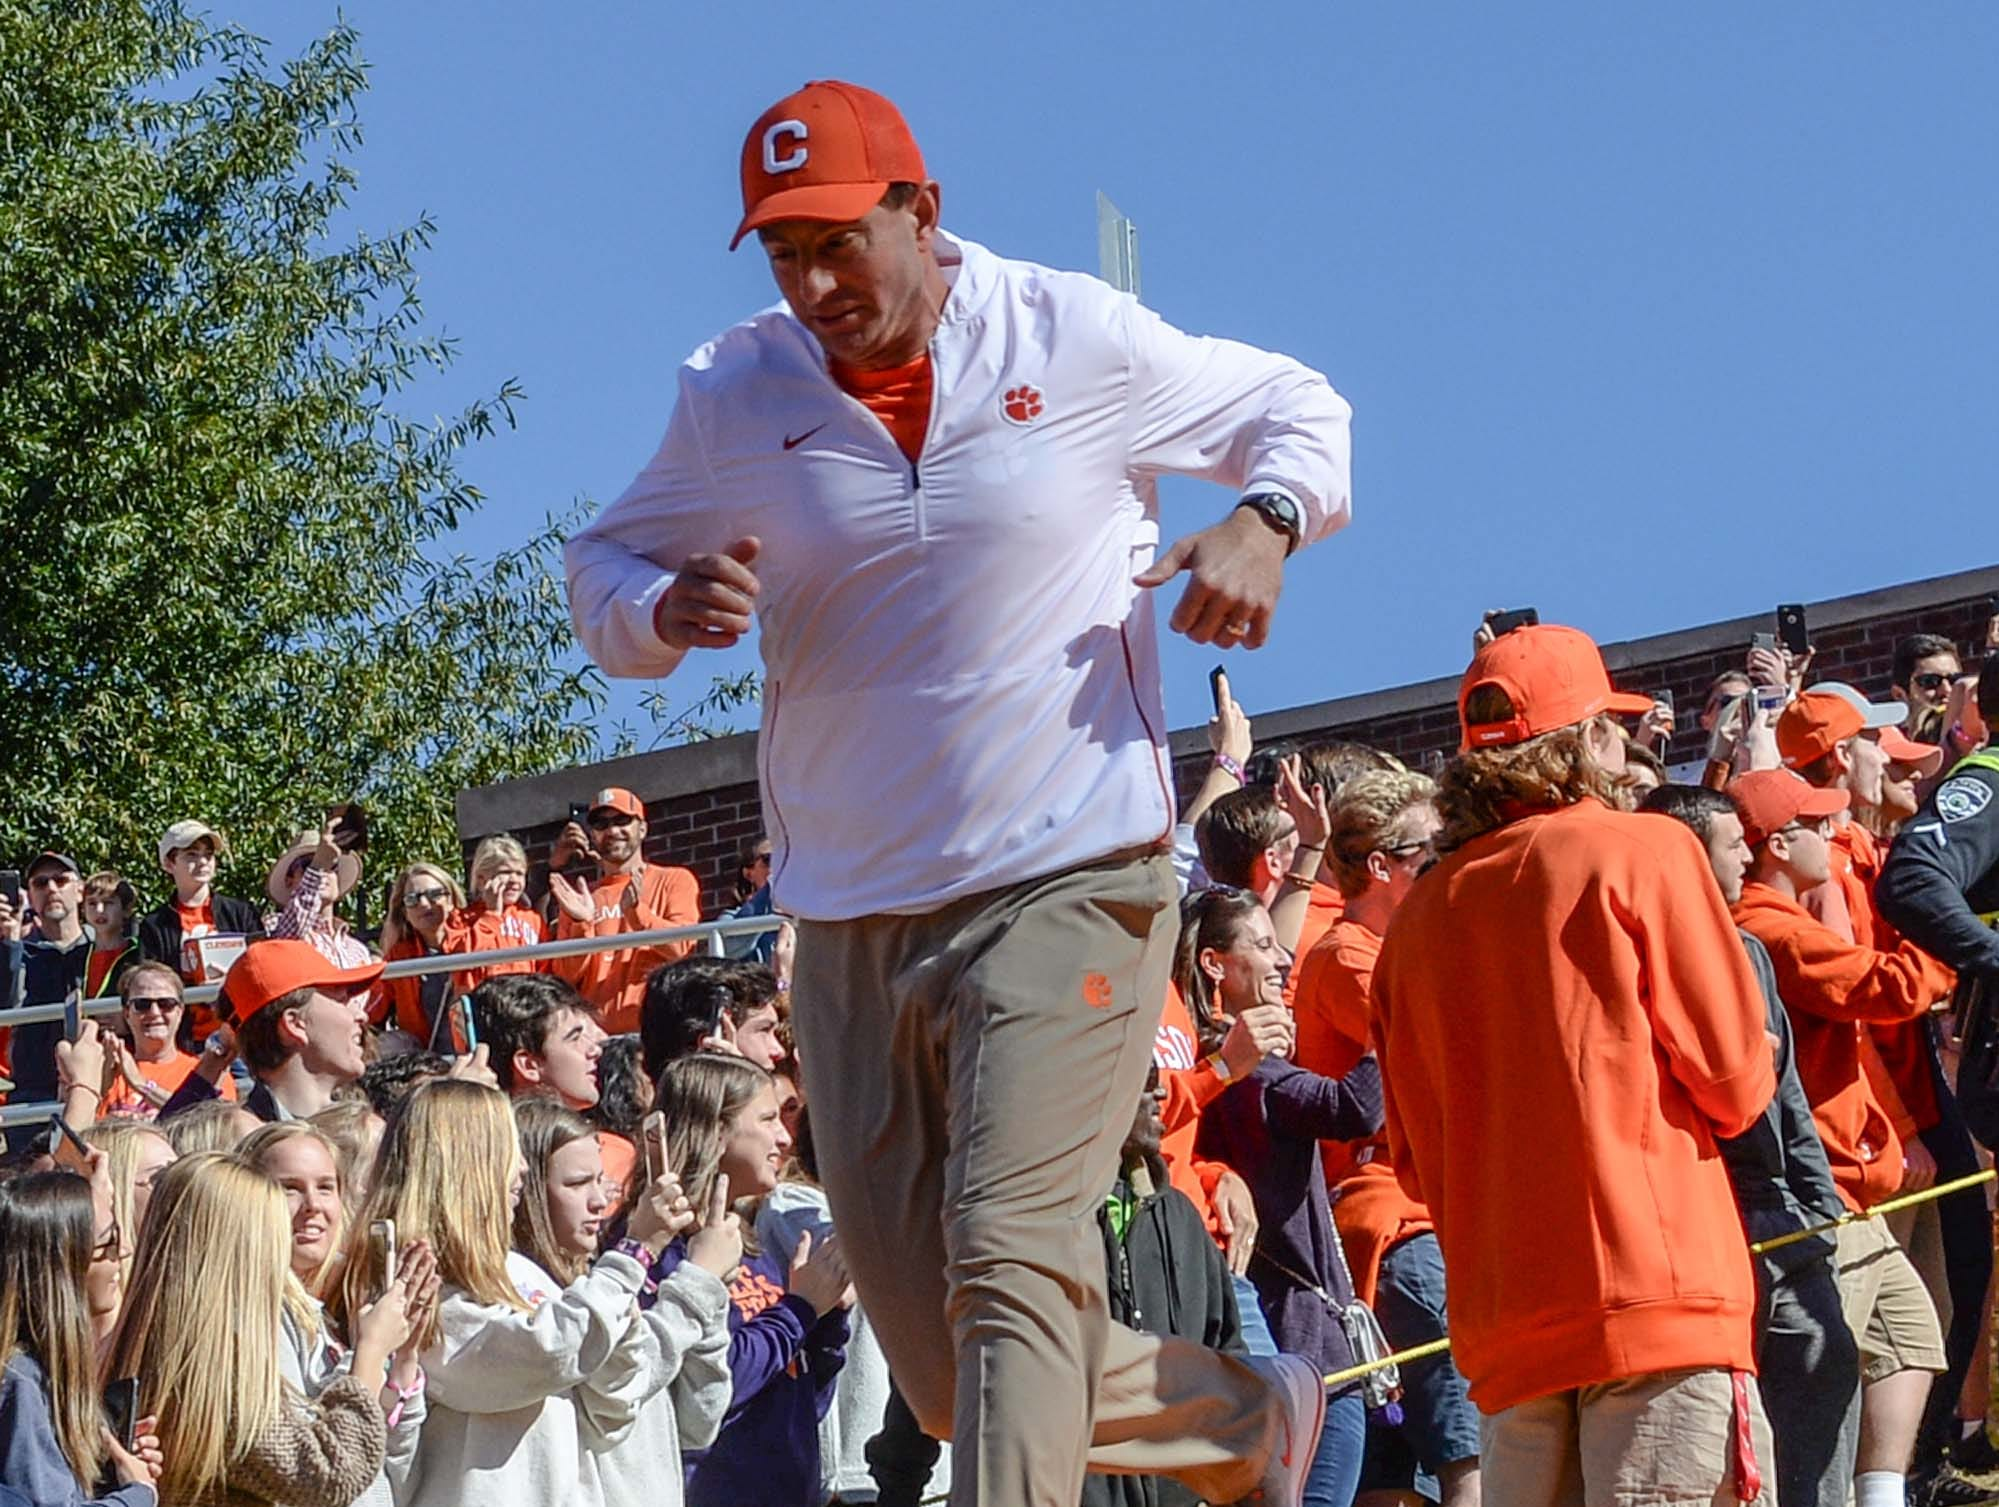 Clemson Head Coach Dabo Swinney runs down the hill before the game with Louisville in Memorial Stadium on Saturday, November 3, 2018.